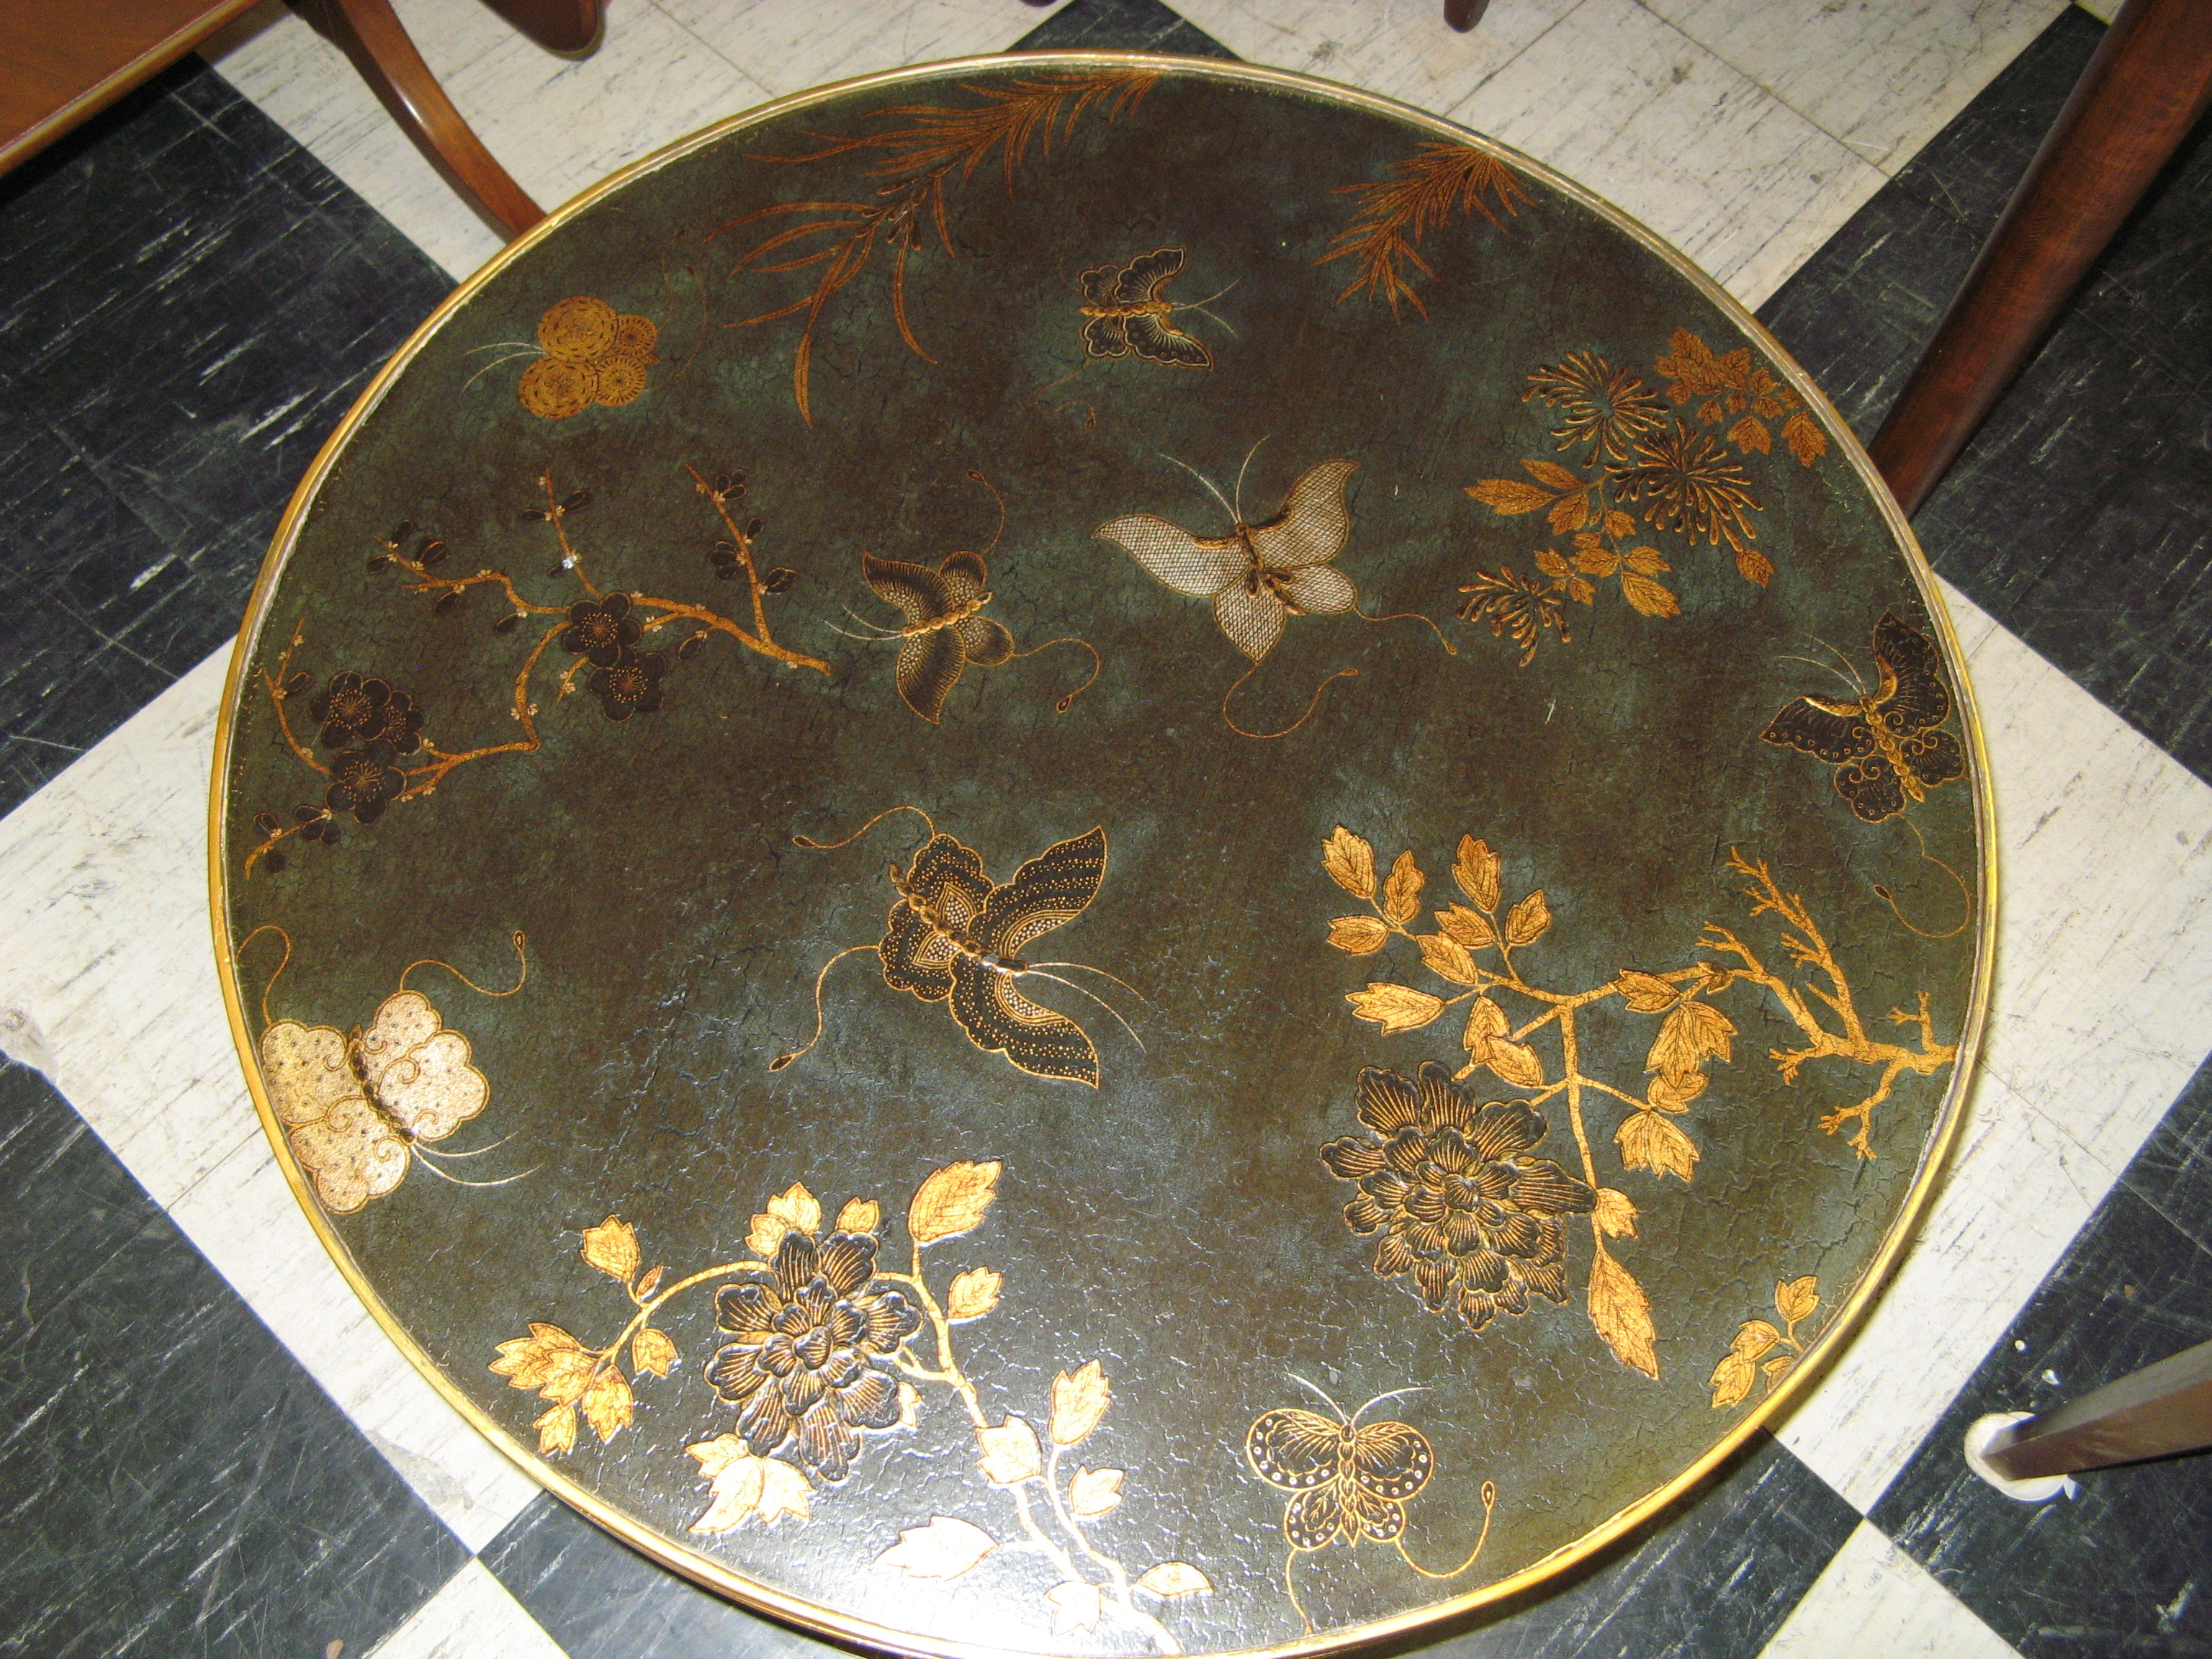 Round Black Coffee Table with Embossed Design, Asian Inspired